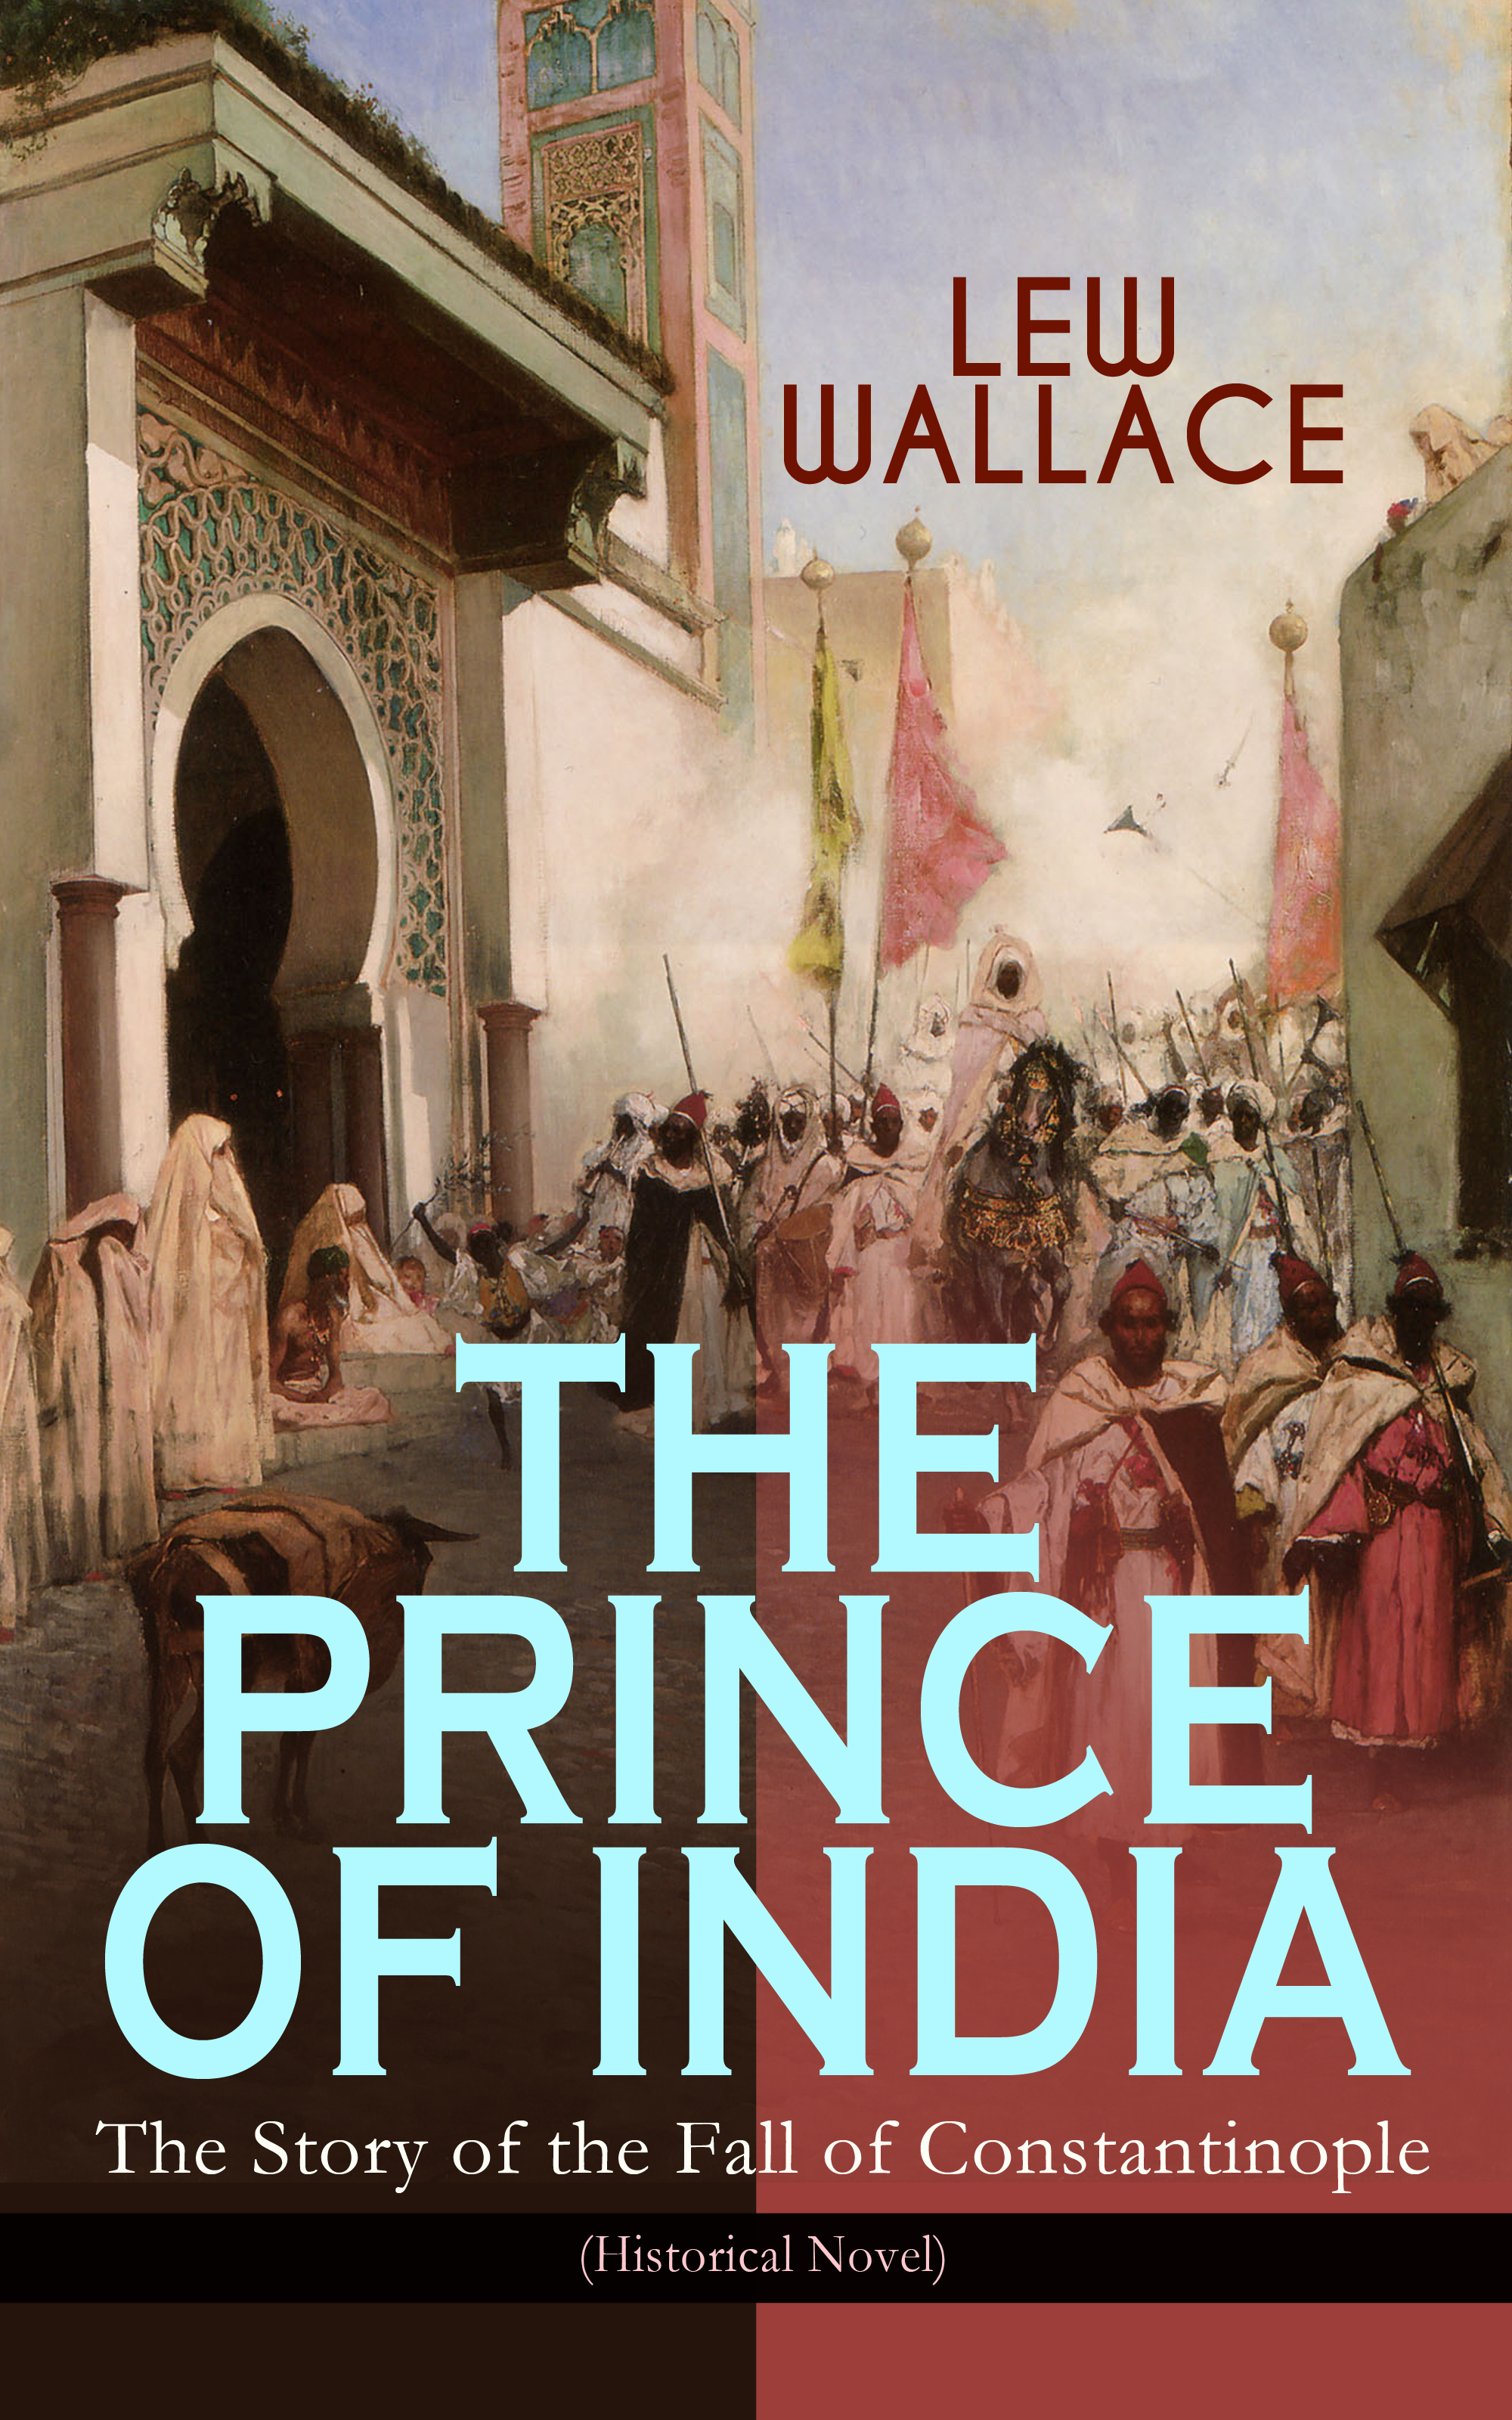 цена Lew Wallace THE PRINCE OF INDIA – The Story of the Fall of Constantinople (Historical Novel) онлайн в 2017 году